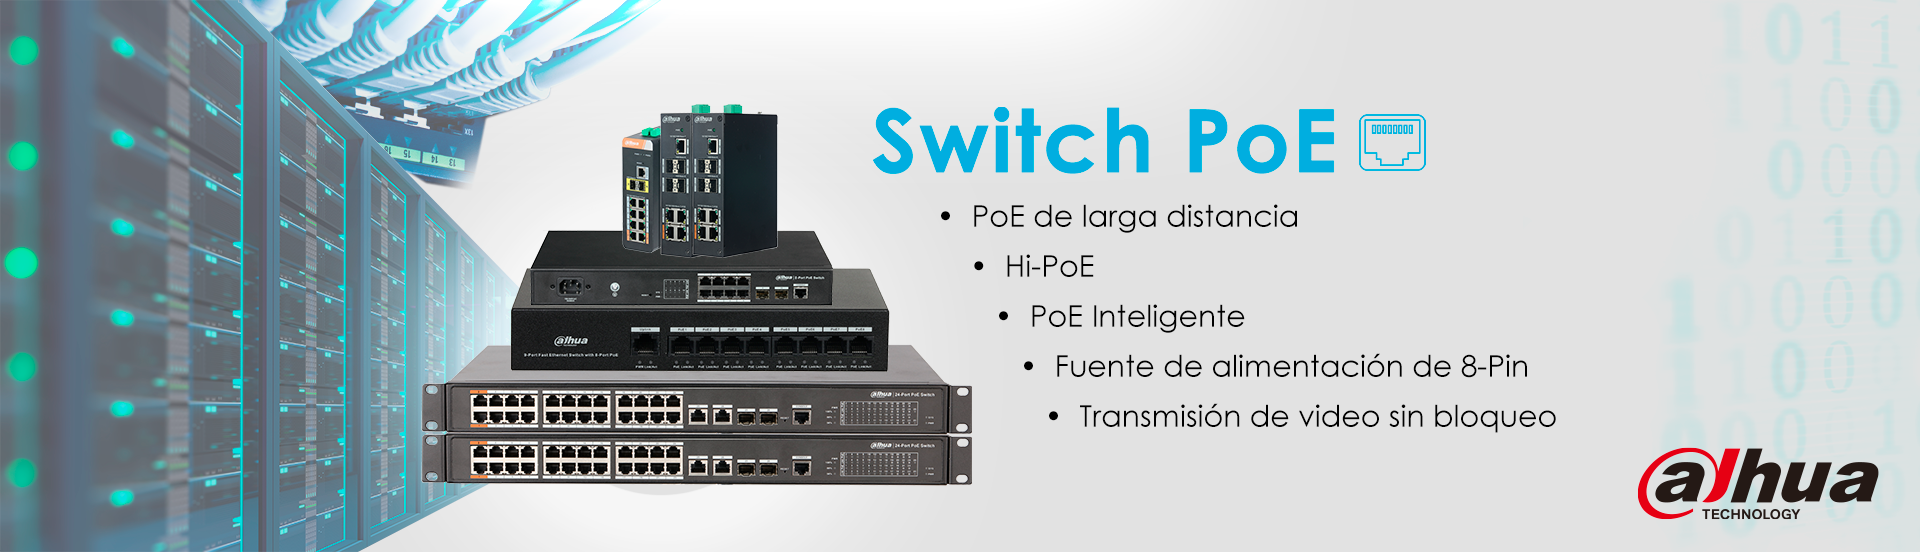 Switch-PoE-web-banner1